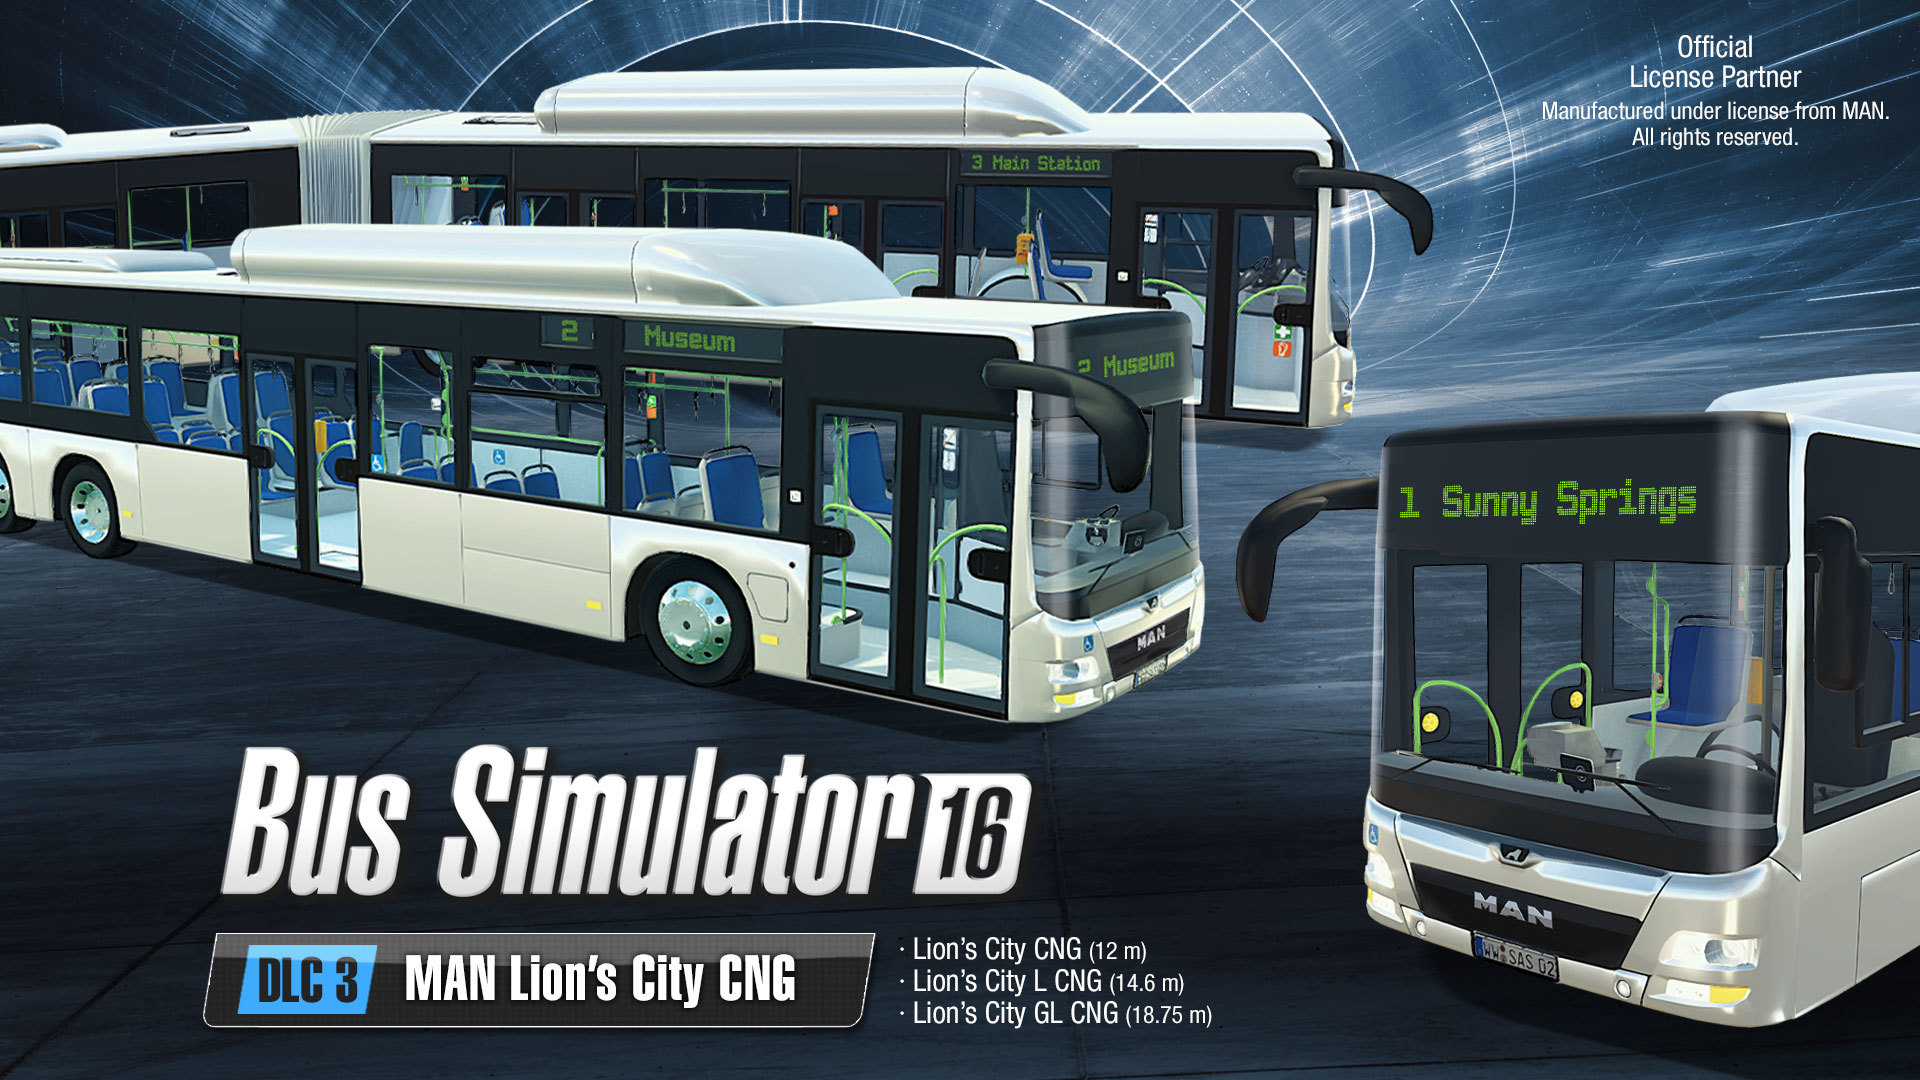 Steam community bus simulator 16 good news today we are happy to present you a first impression of our upcoming man lions city cng dlc for bus simulator 16 according to plan the dlc will falaconquin